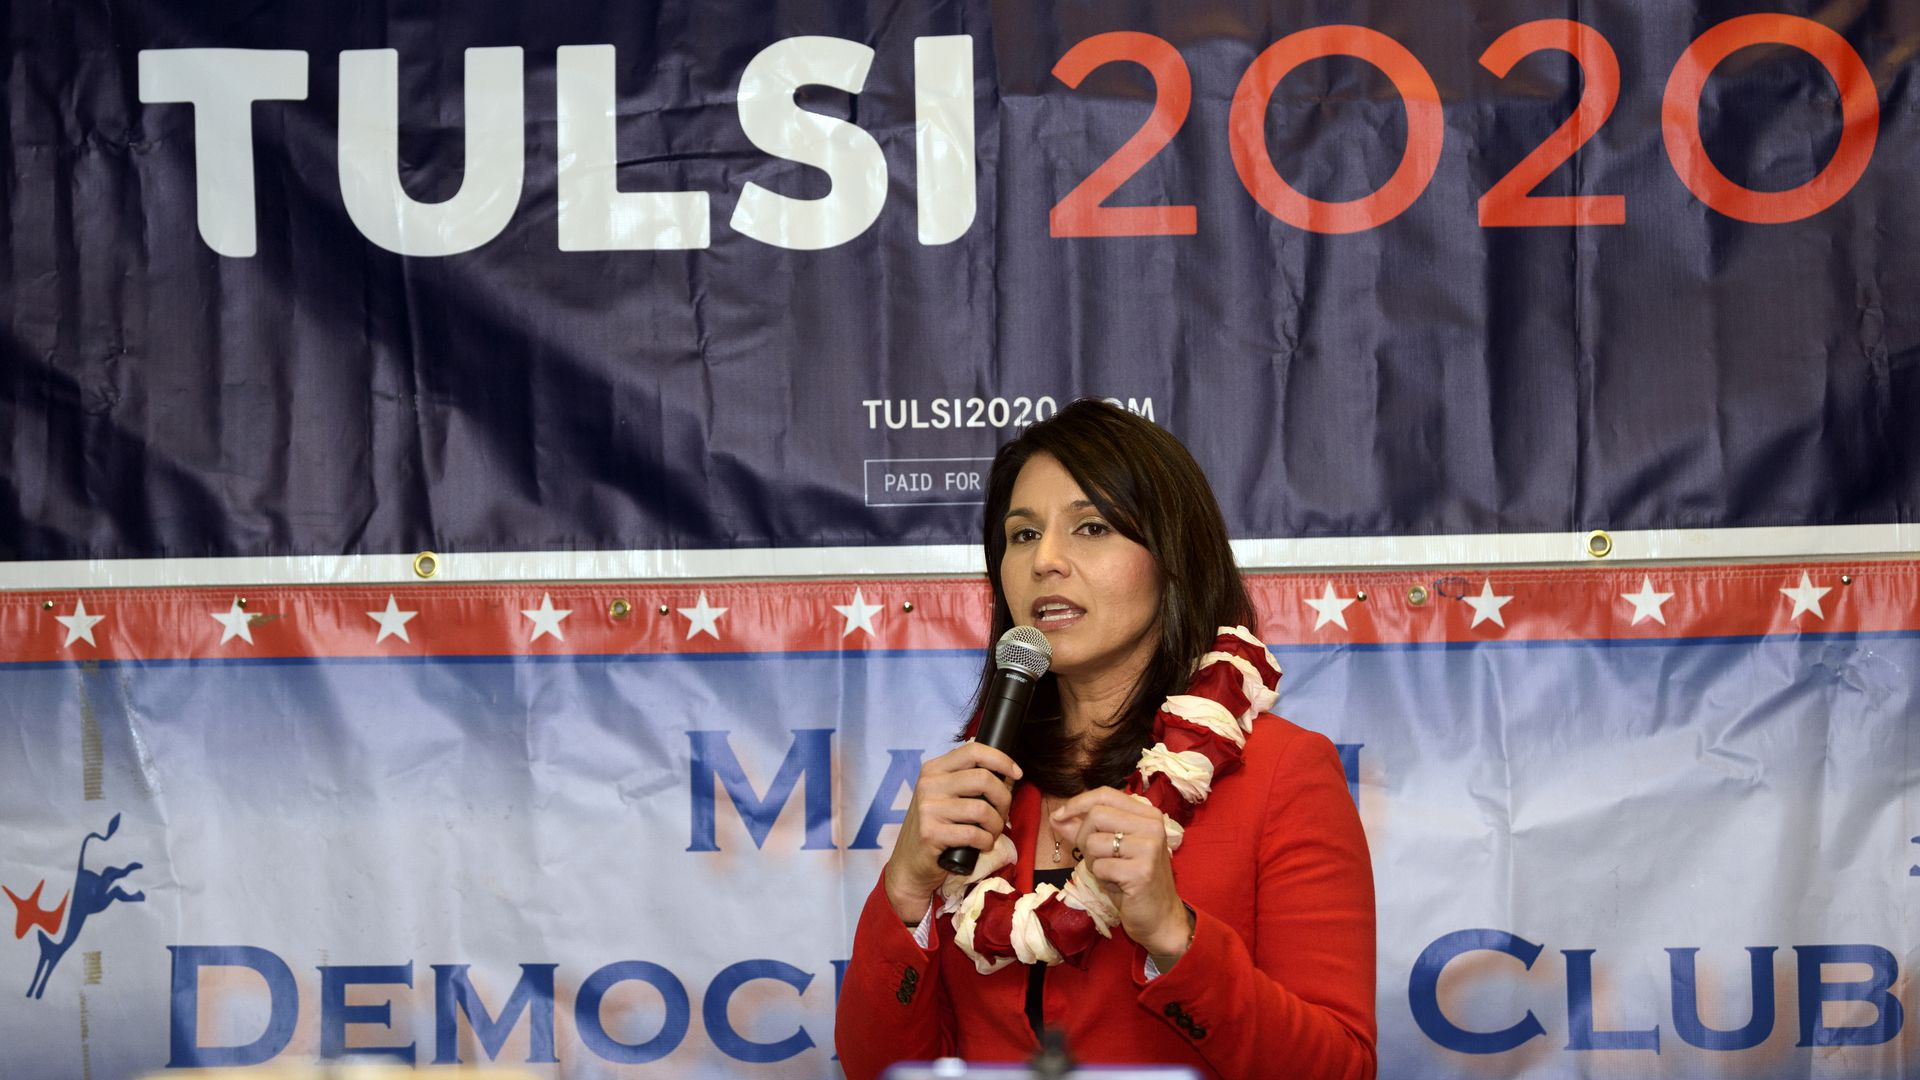 Tulsi Gabbard vows to drop charges against Assange, Snowden if elected in 2020